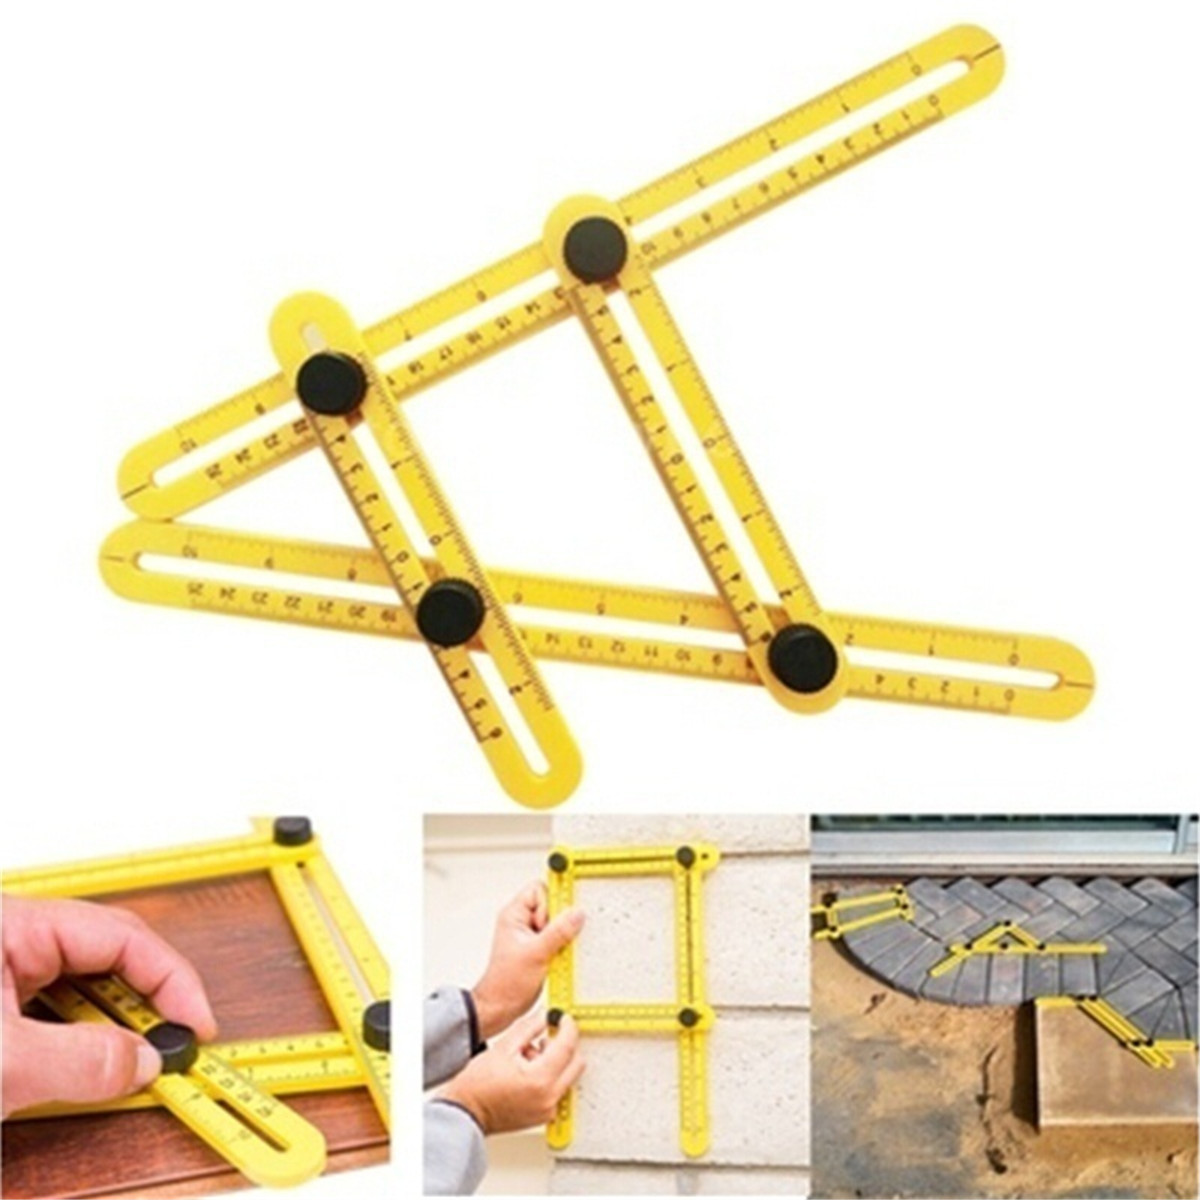 Drawing Ruler Office Multifunction Multi-angle Drawing Ruler Gauge Four Corners Activities Folding Feet Hardware Measure Tools